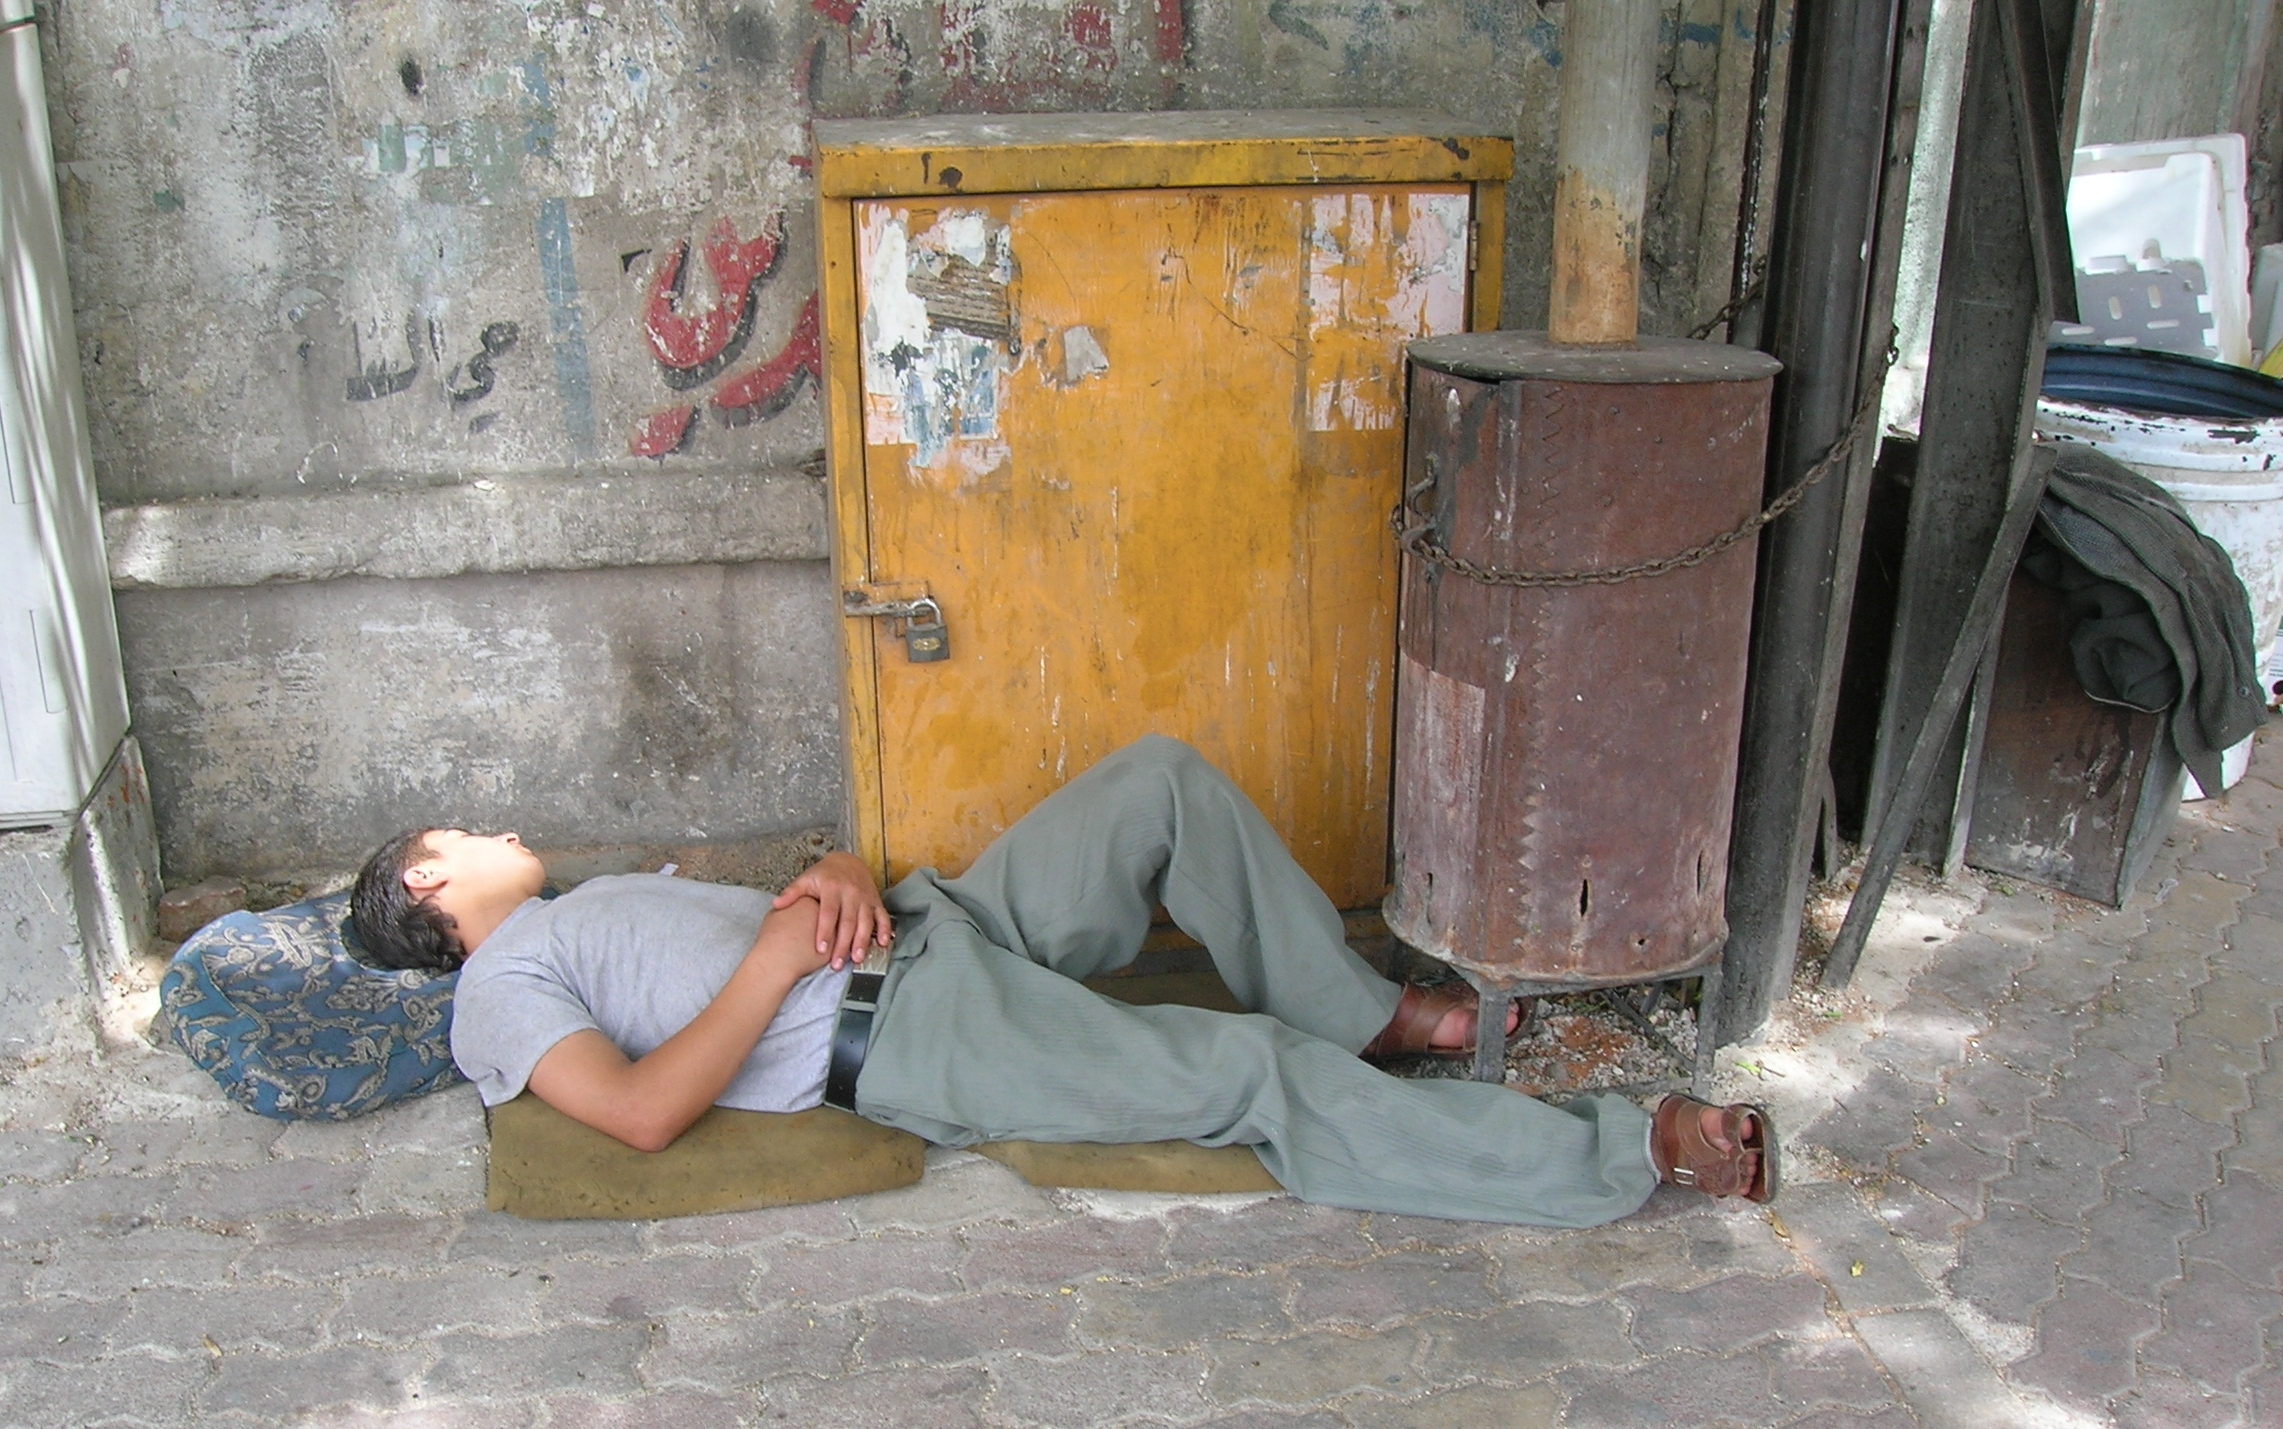 Syrian boy sleeps on street